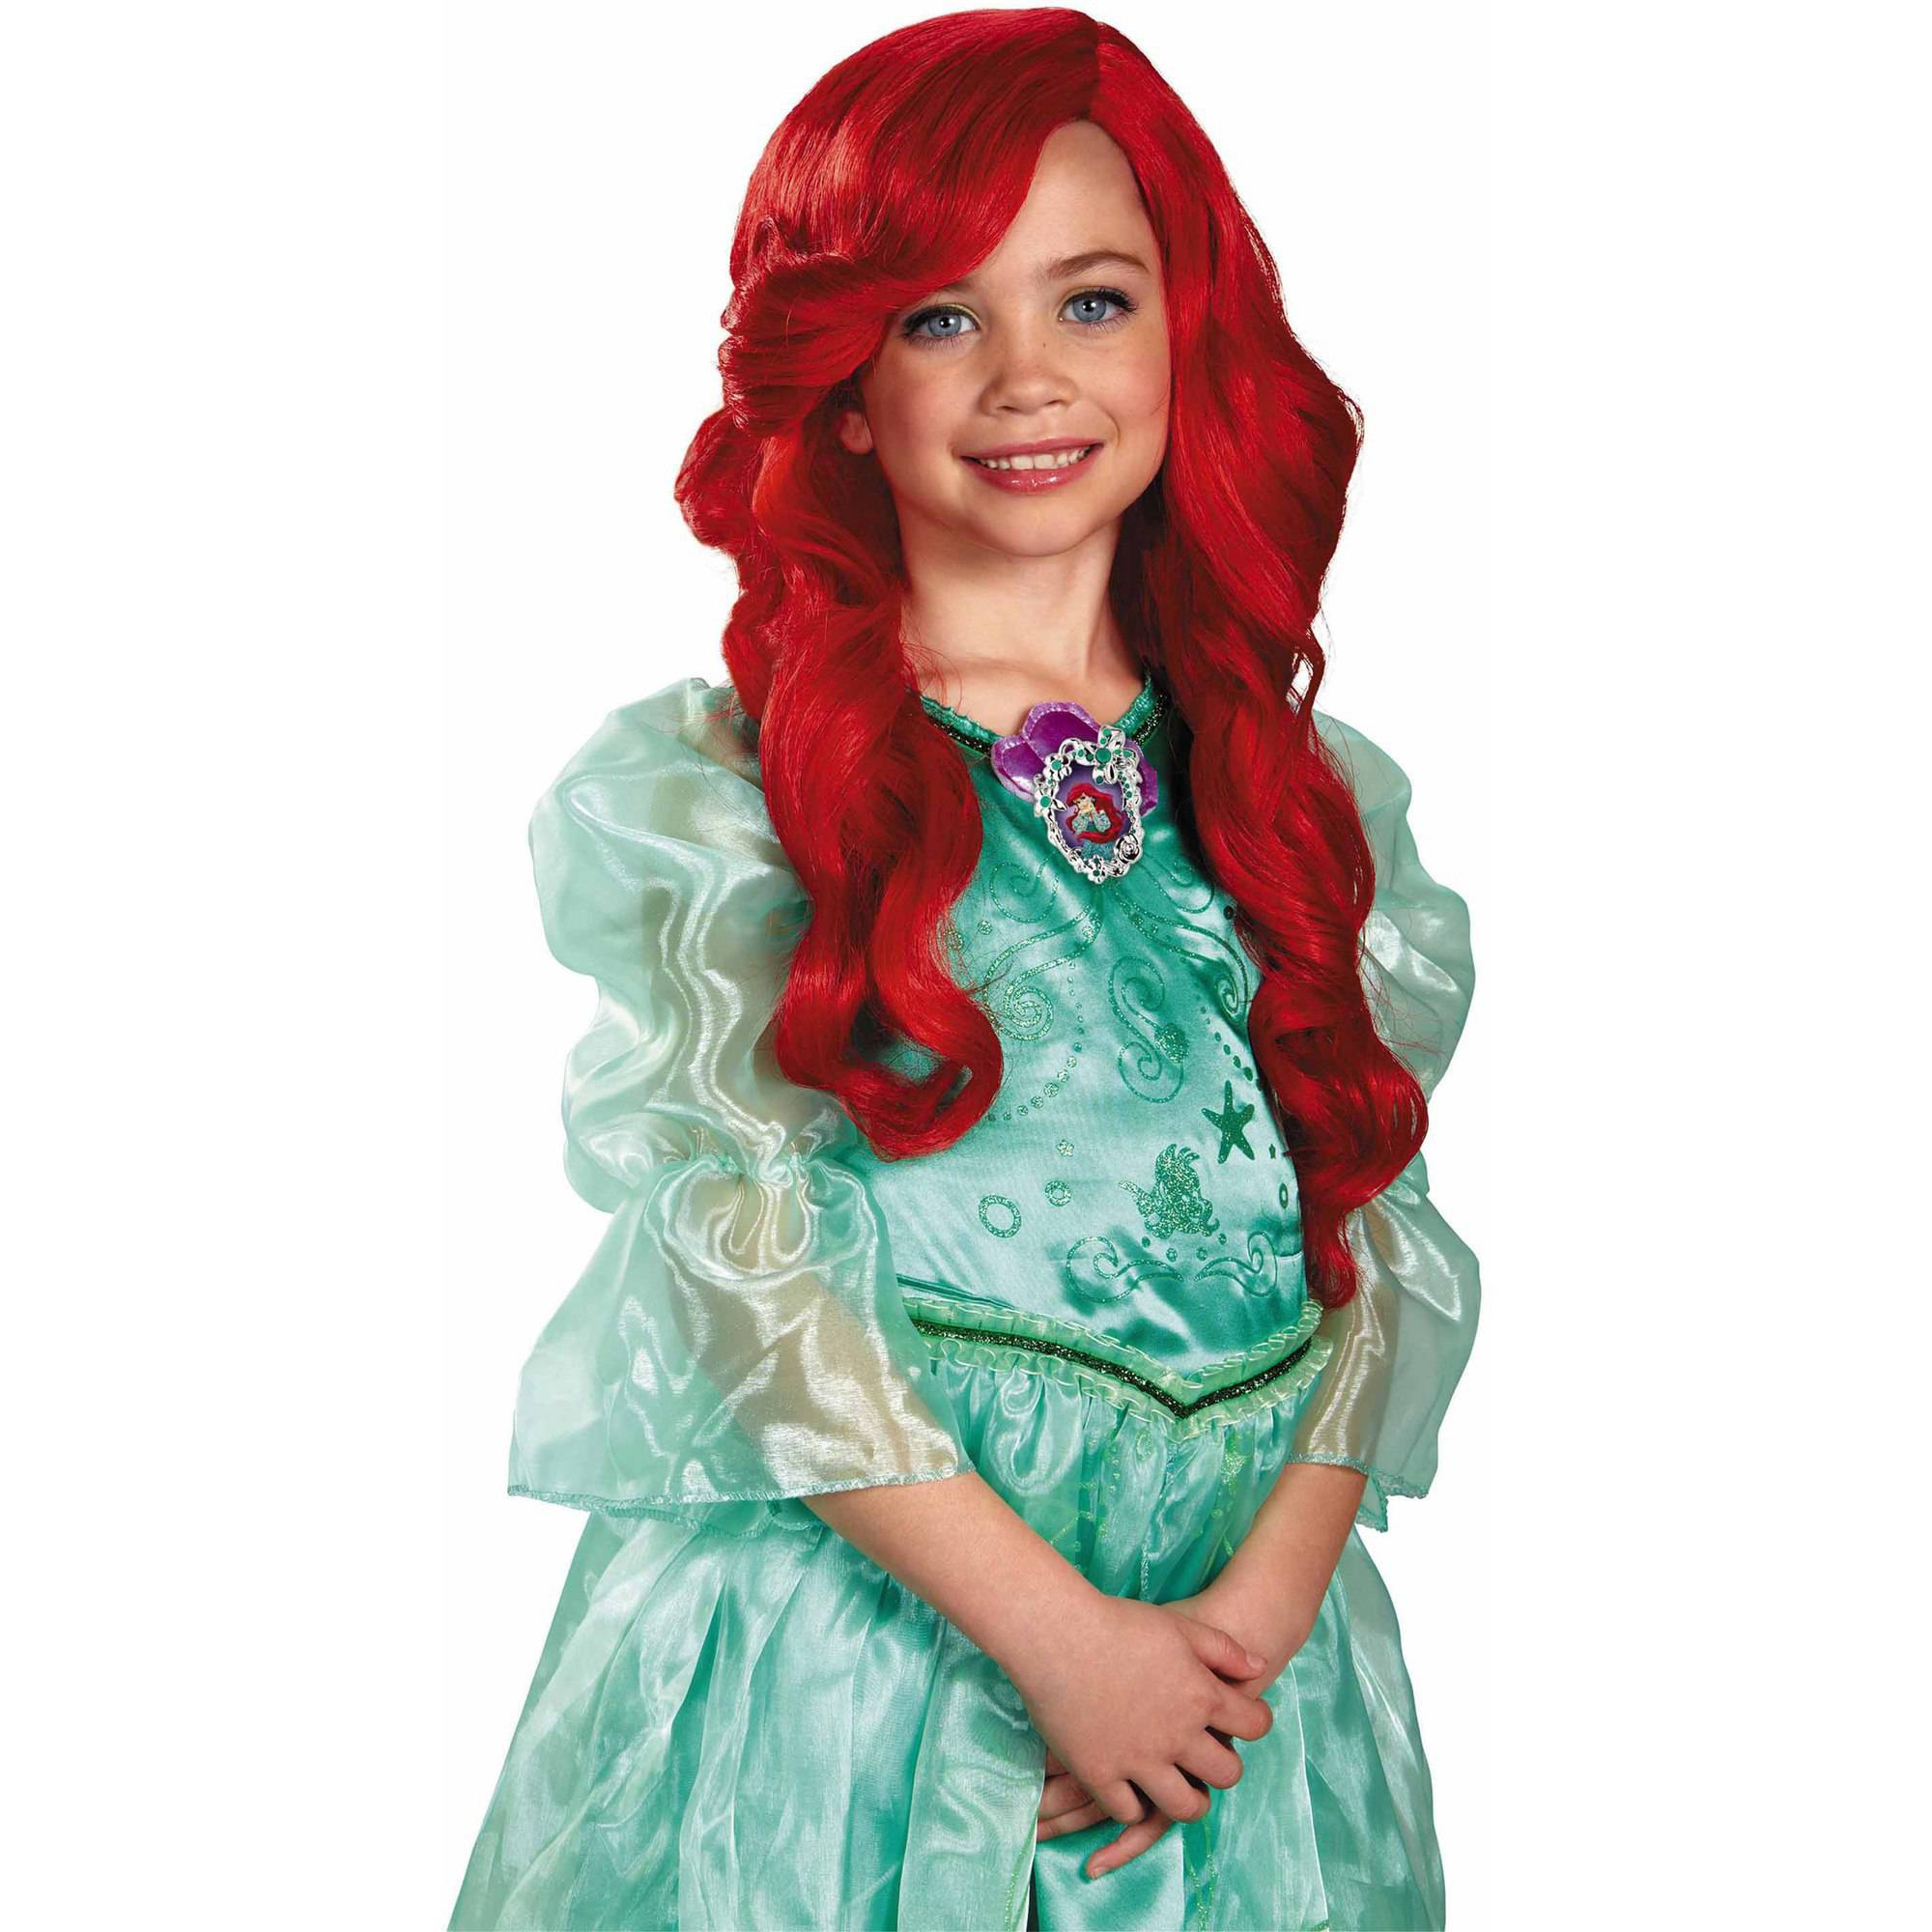 the little mermaid ariel child wig halloween accessory - Red Wigs For Halloween